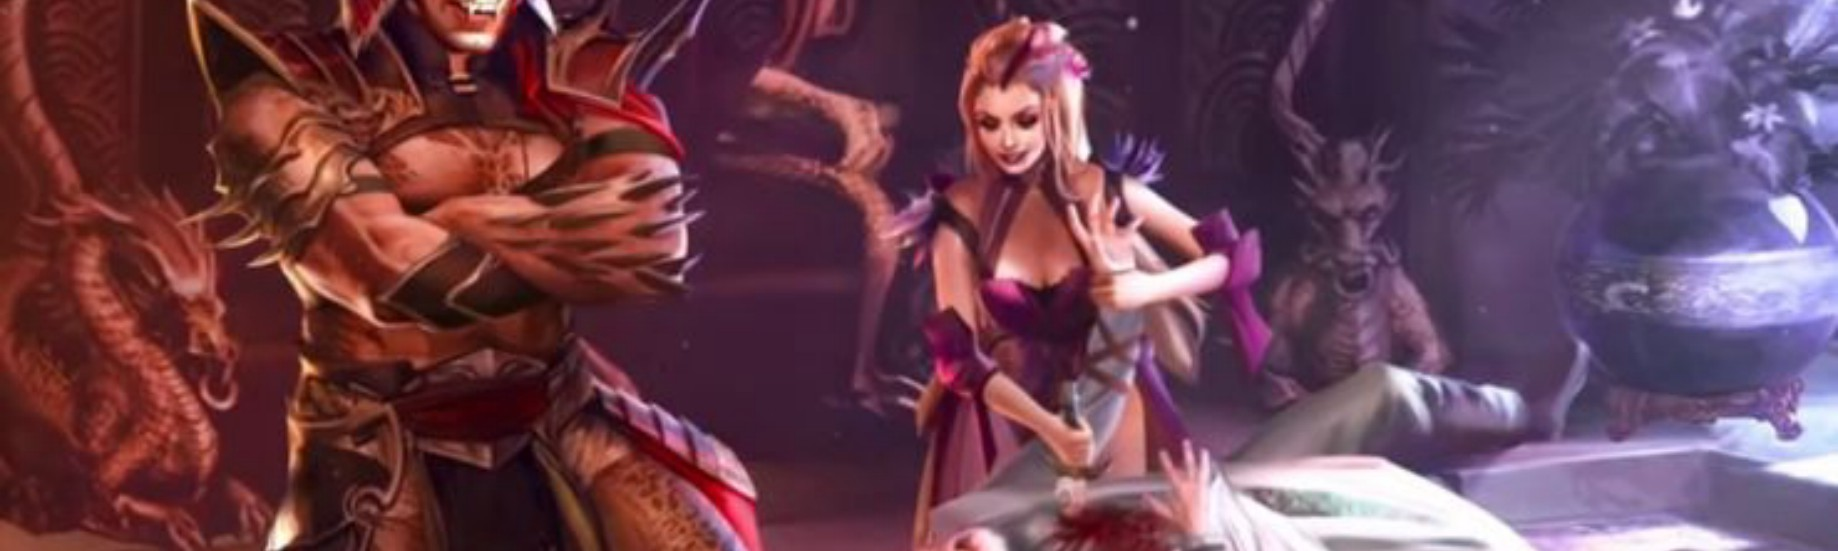 Empowerment Vs Emancipation What Went Wrong With Mortal Kombat